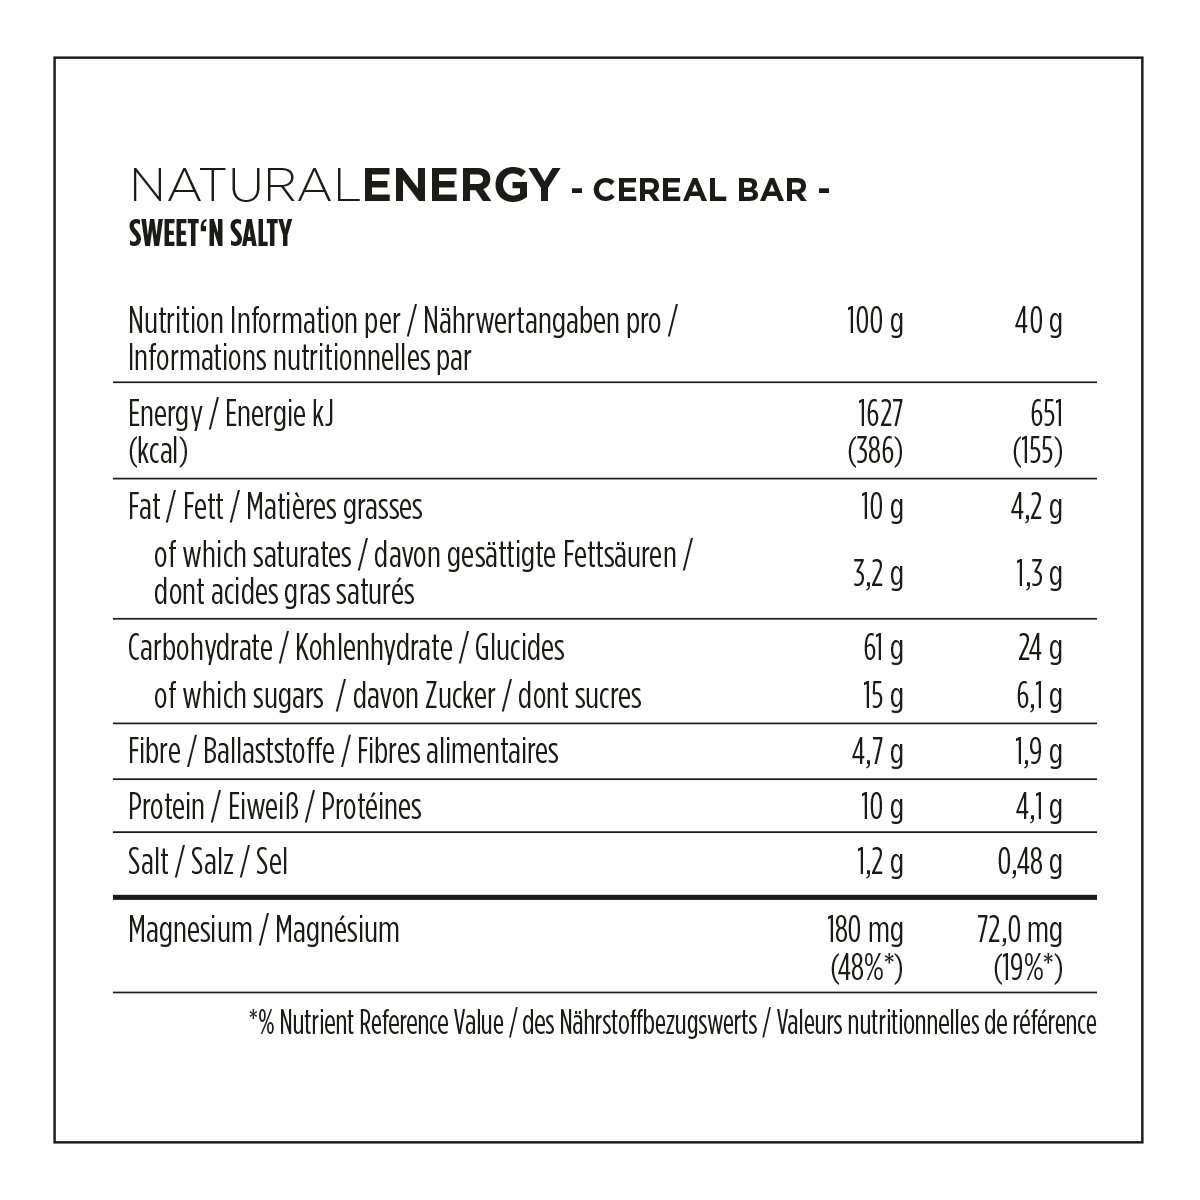 Powerbar Natural Energy Cereal Bar + Magnesium Sweetn Salty - 24 Barras: Amazon.es: Alimentación y bebidas